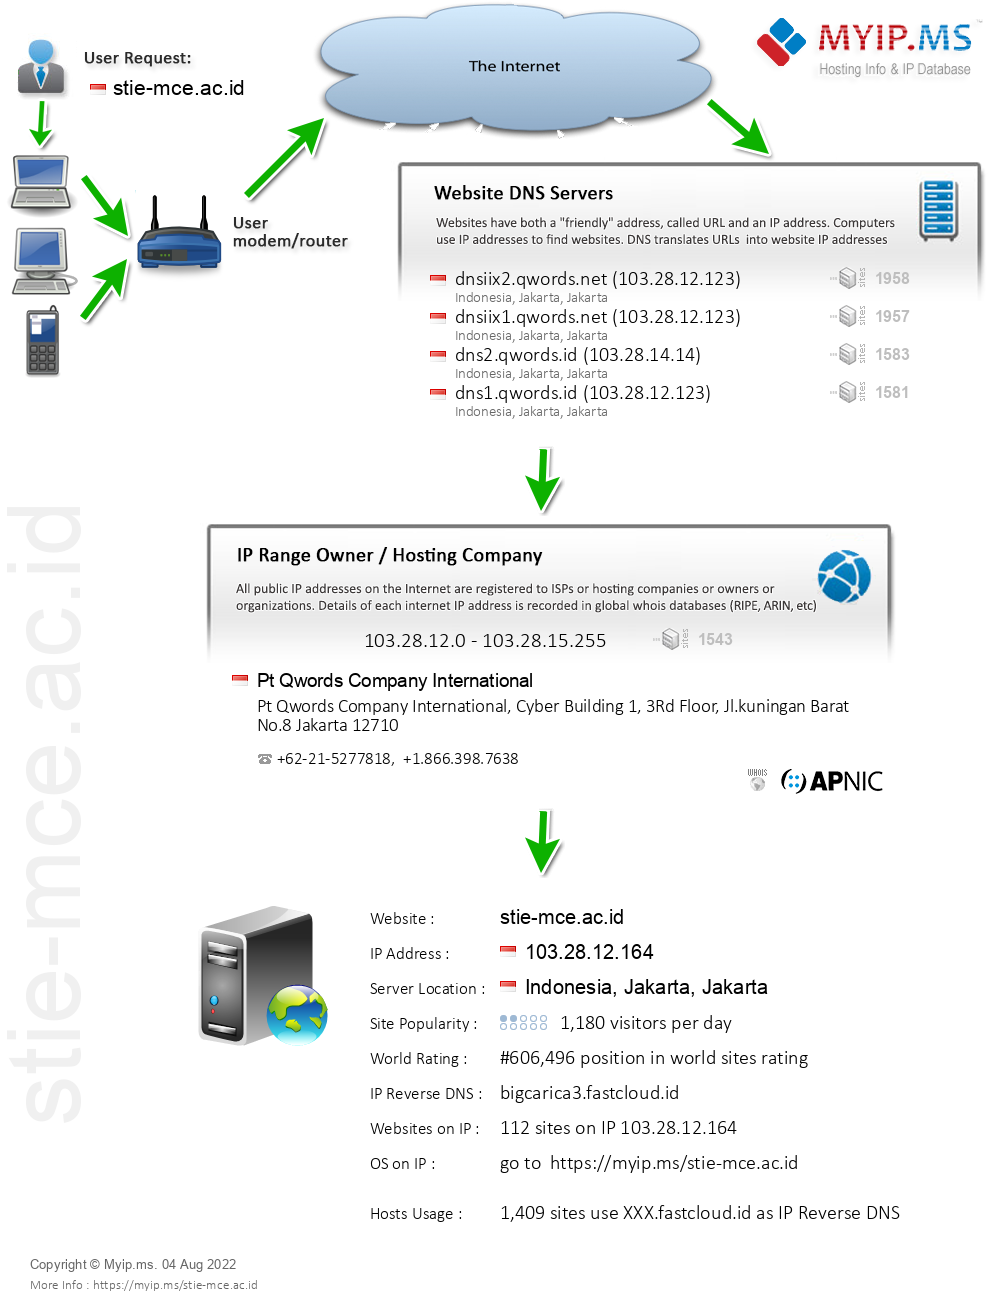 Stie-mce.ac.id - Website Hosting Visual IP Diagram